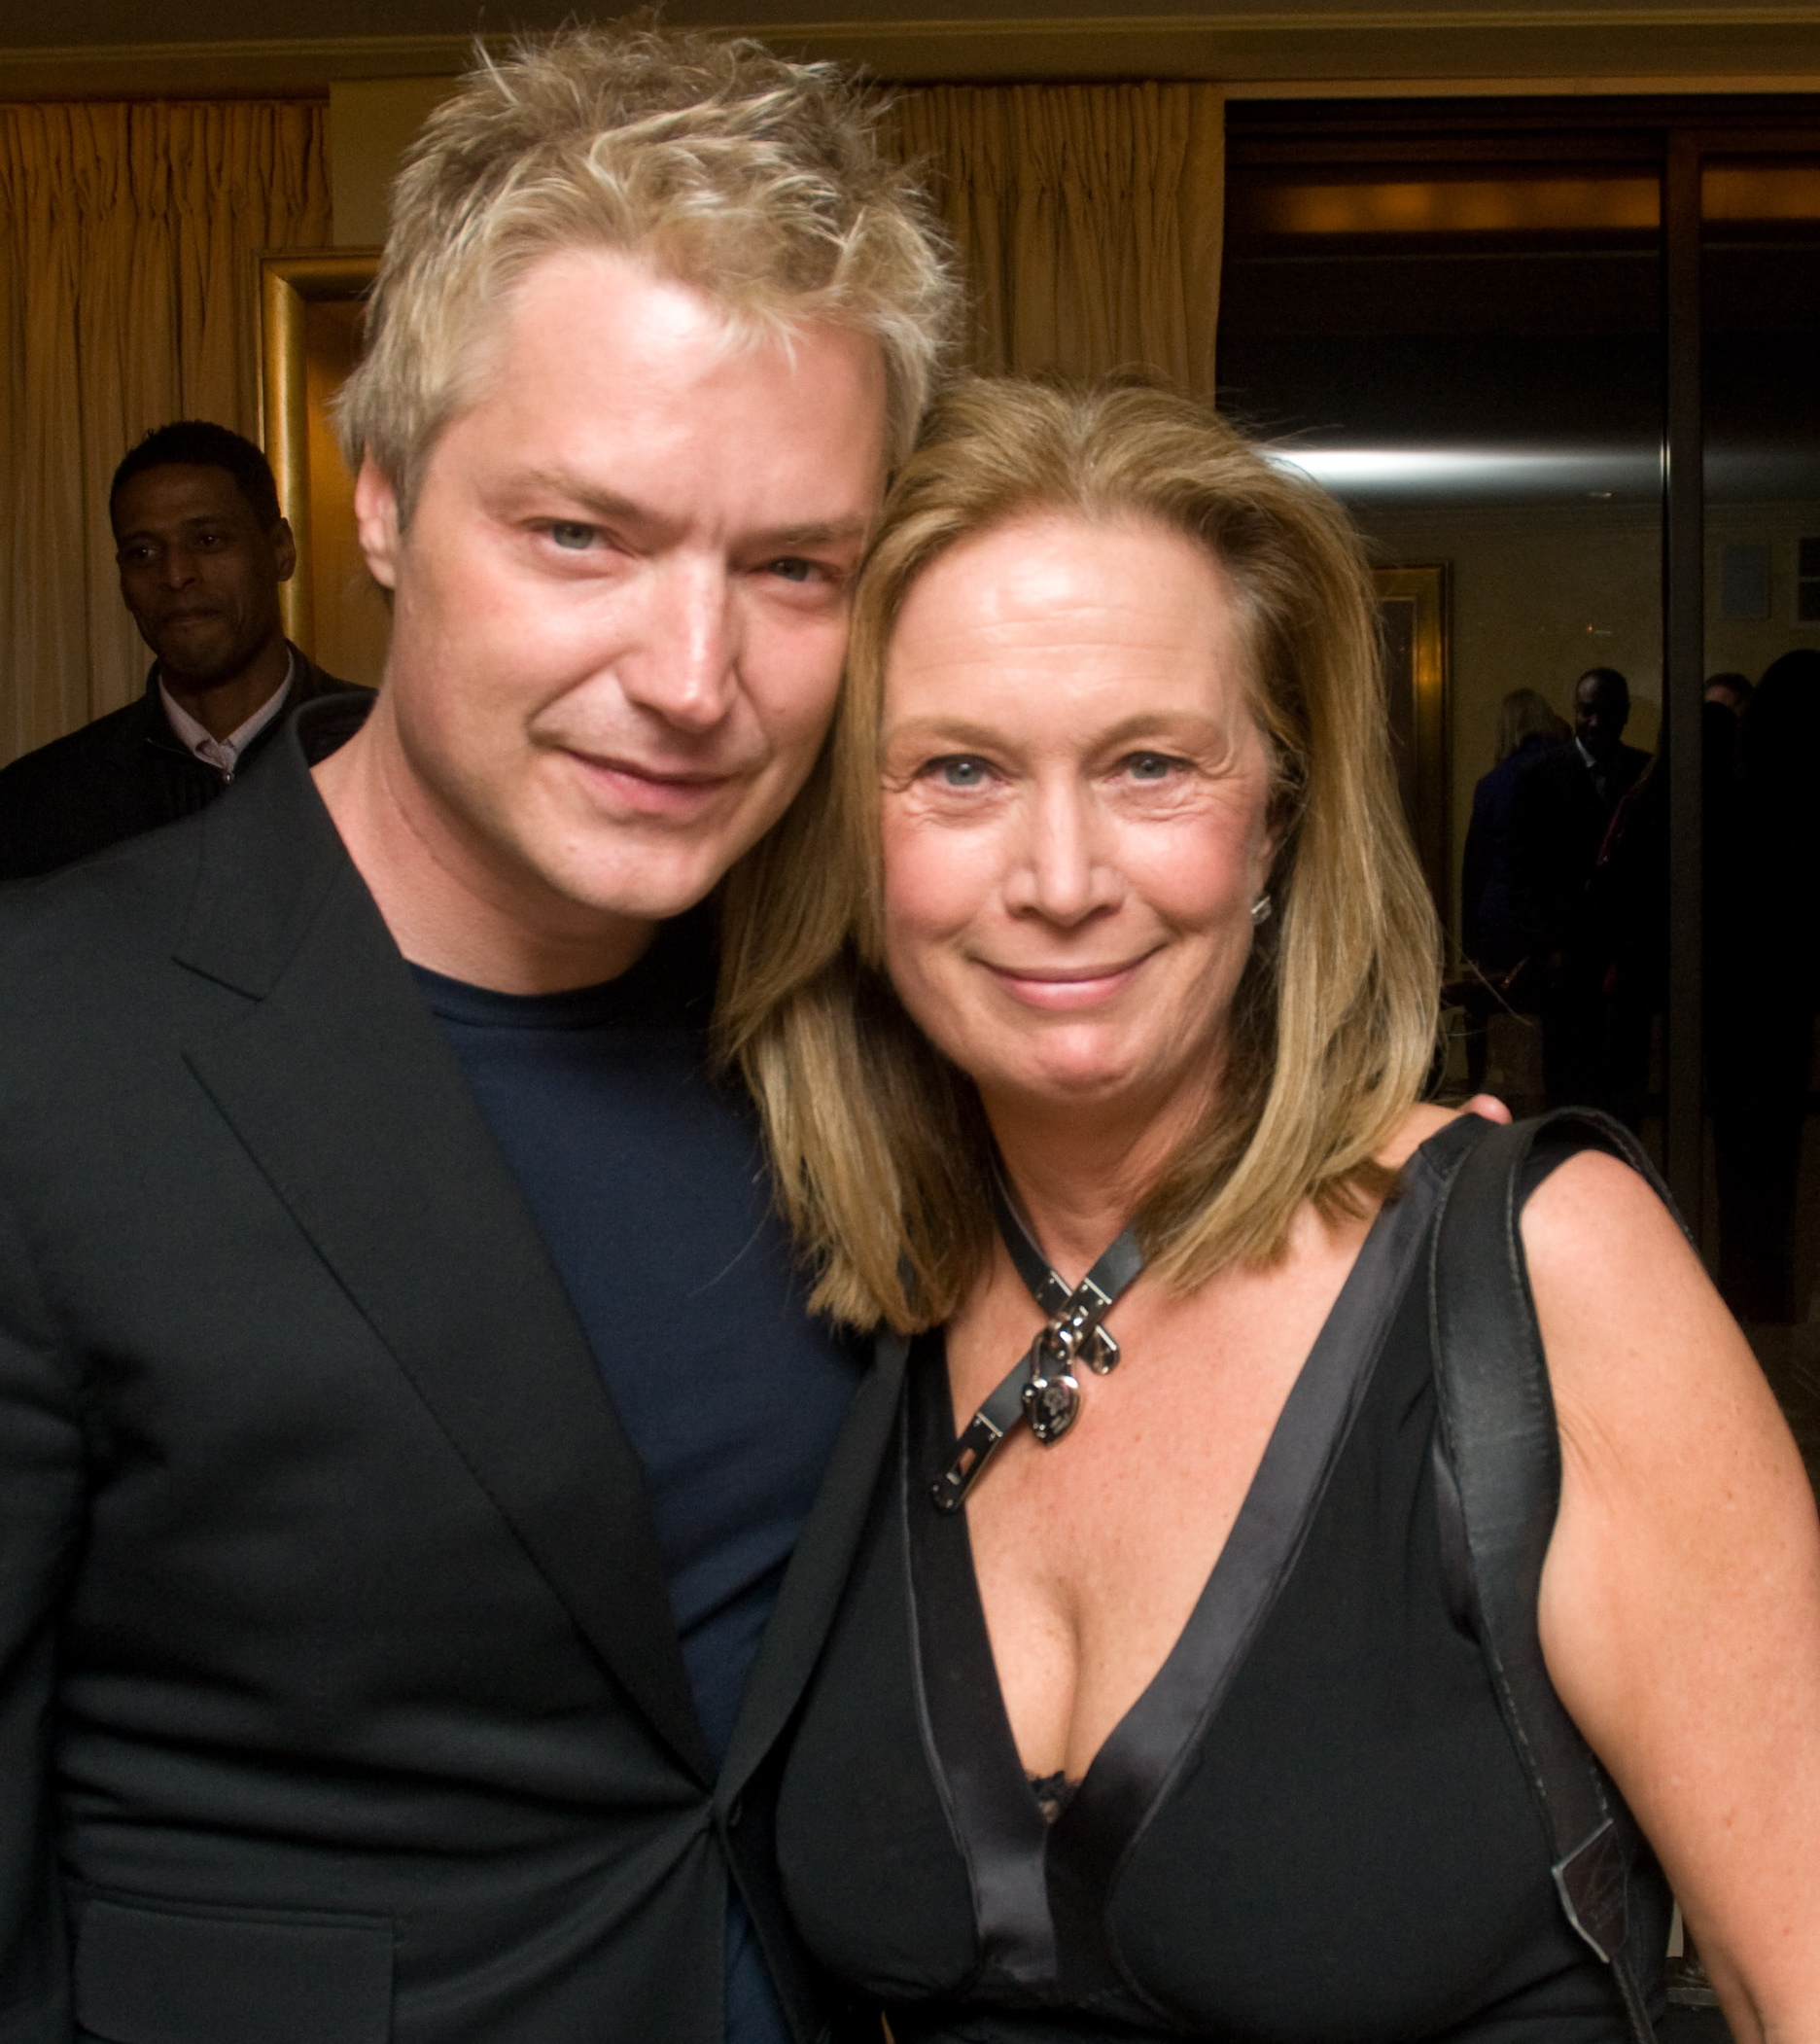 Chris Botti: My Funny Valentine, Sweet Groovy Valentine